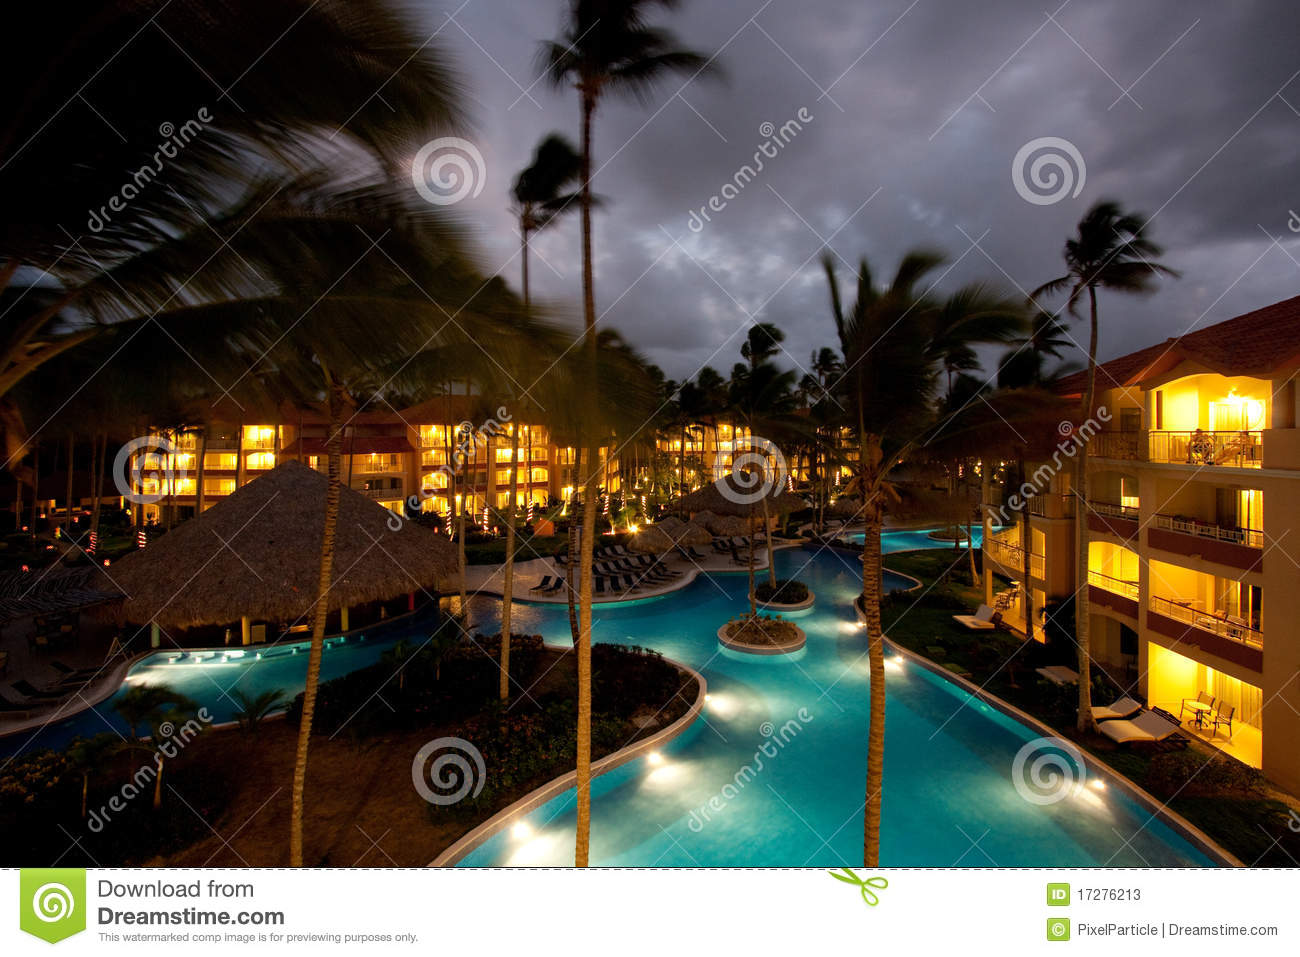 luxury-resort-night-17276213.jpg